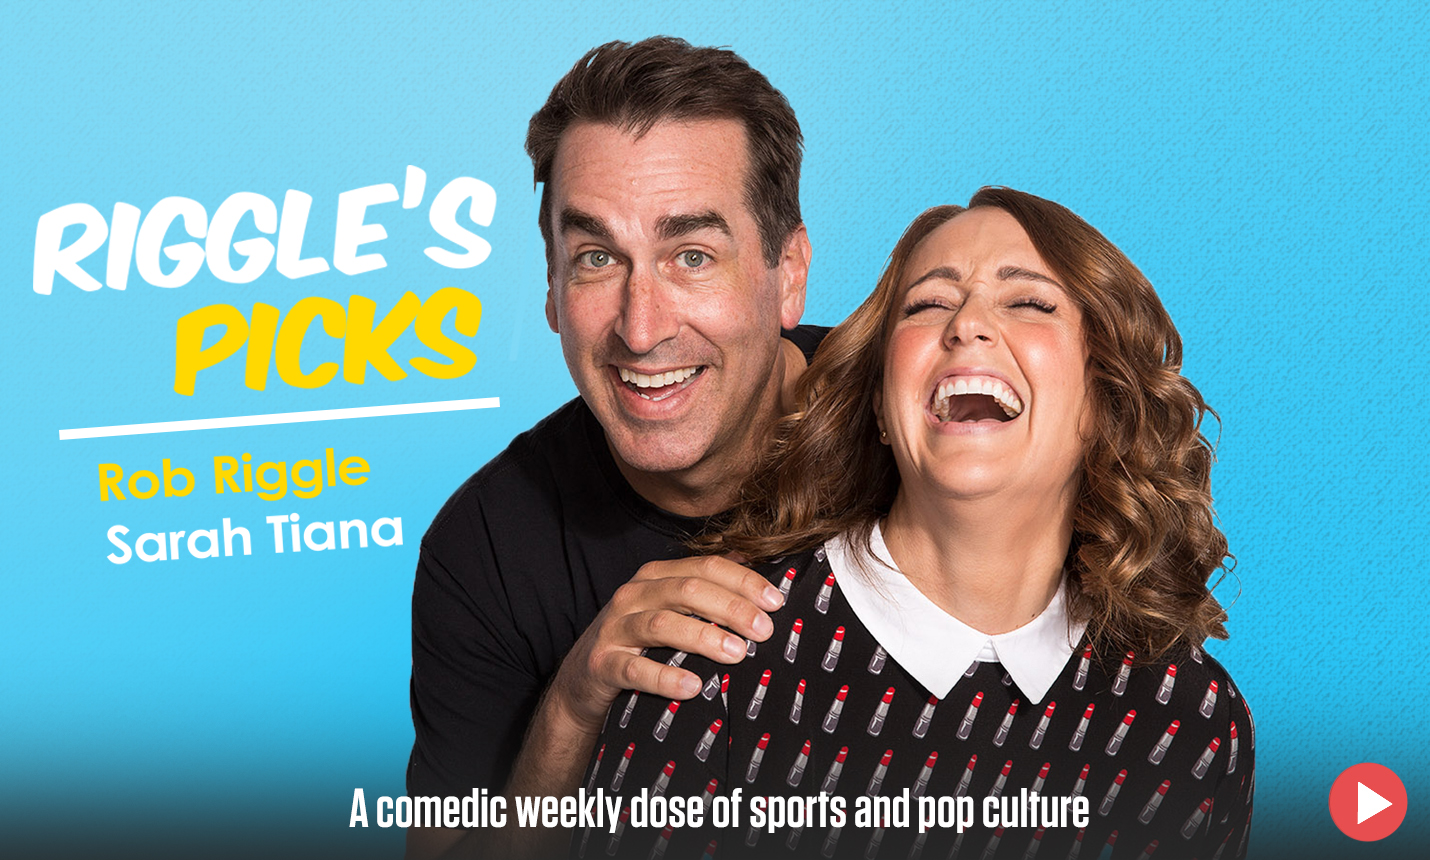 Riggles Picks with Rob Riggle and Sarah Tiana